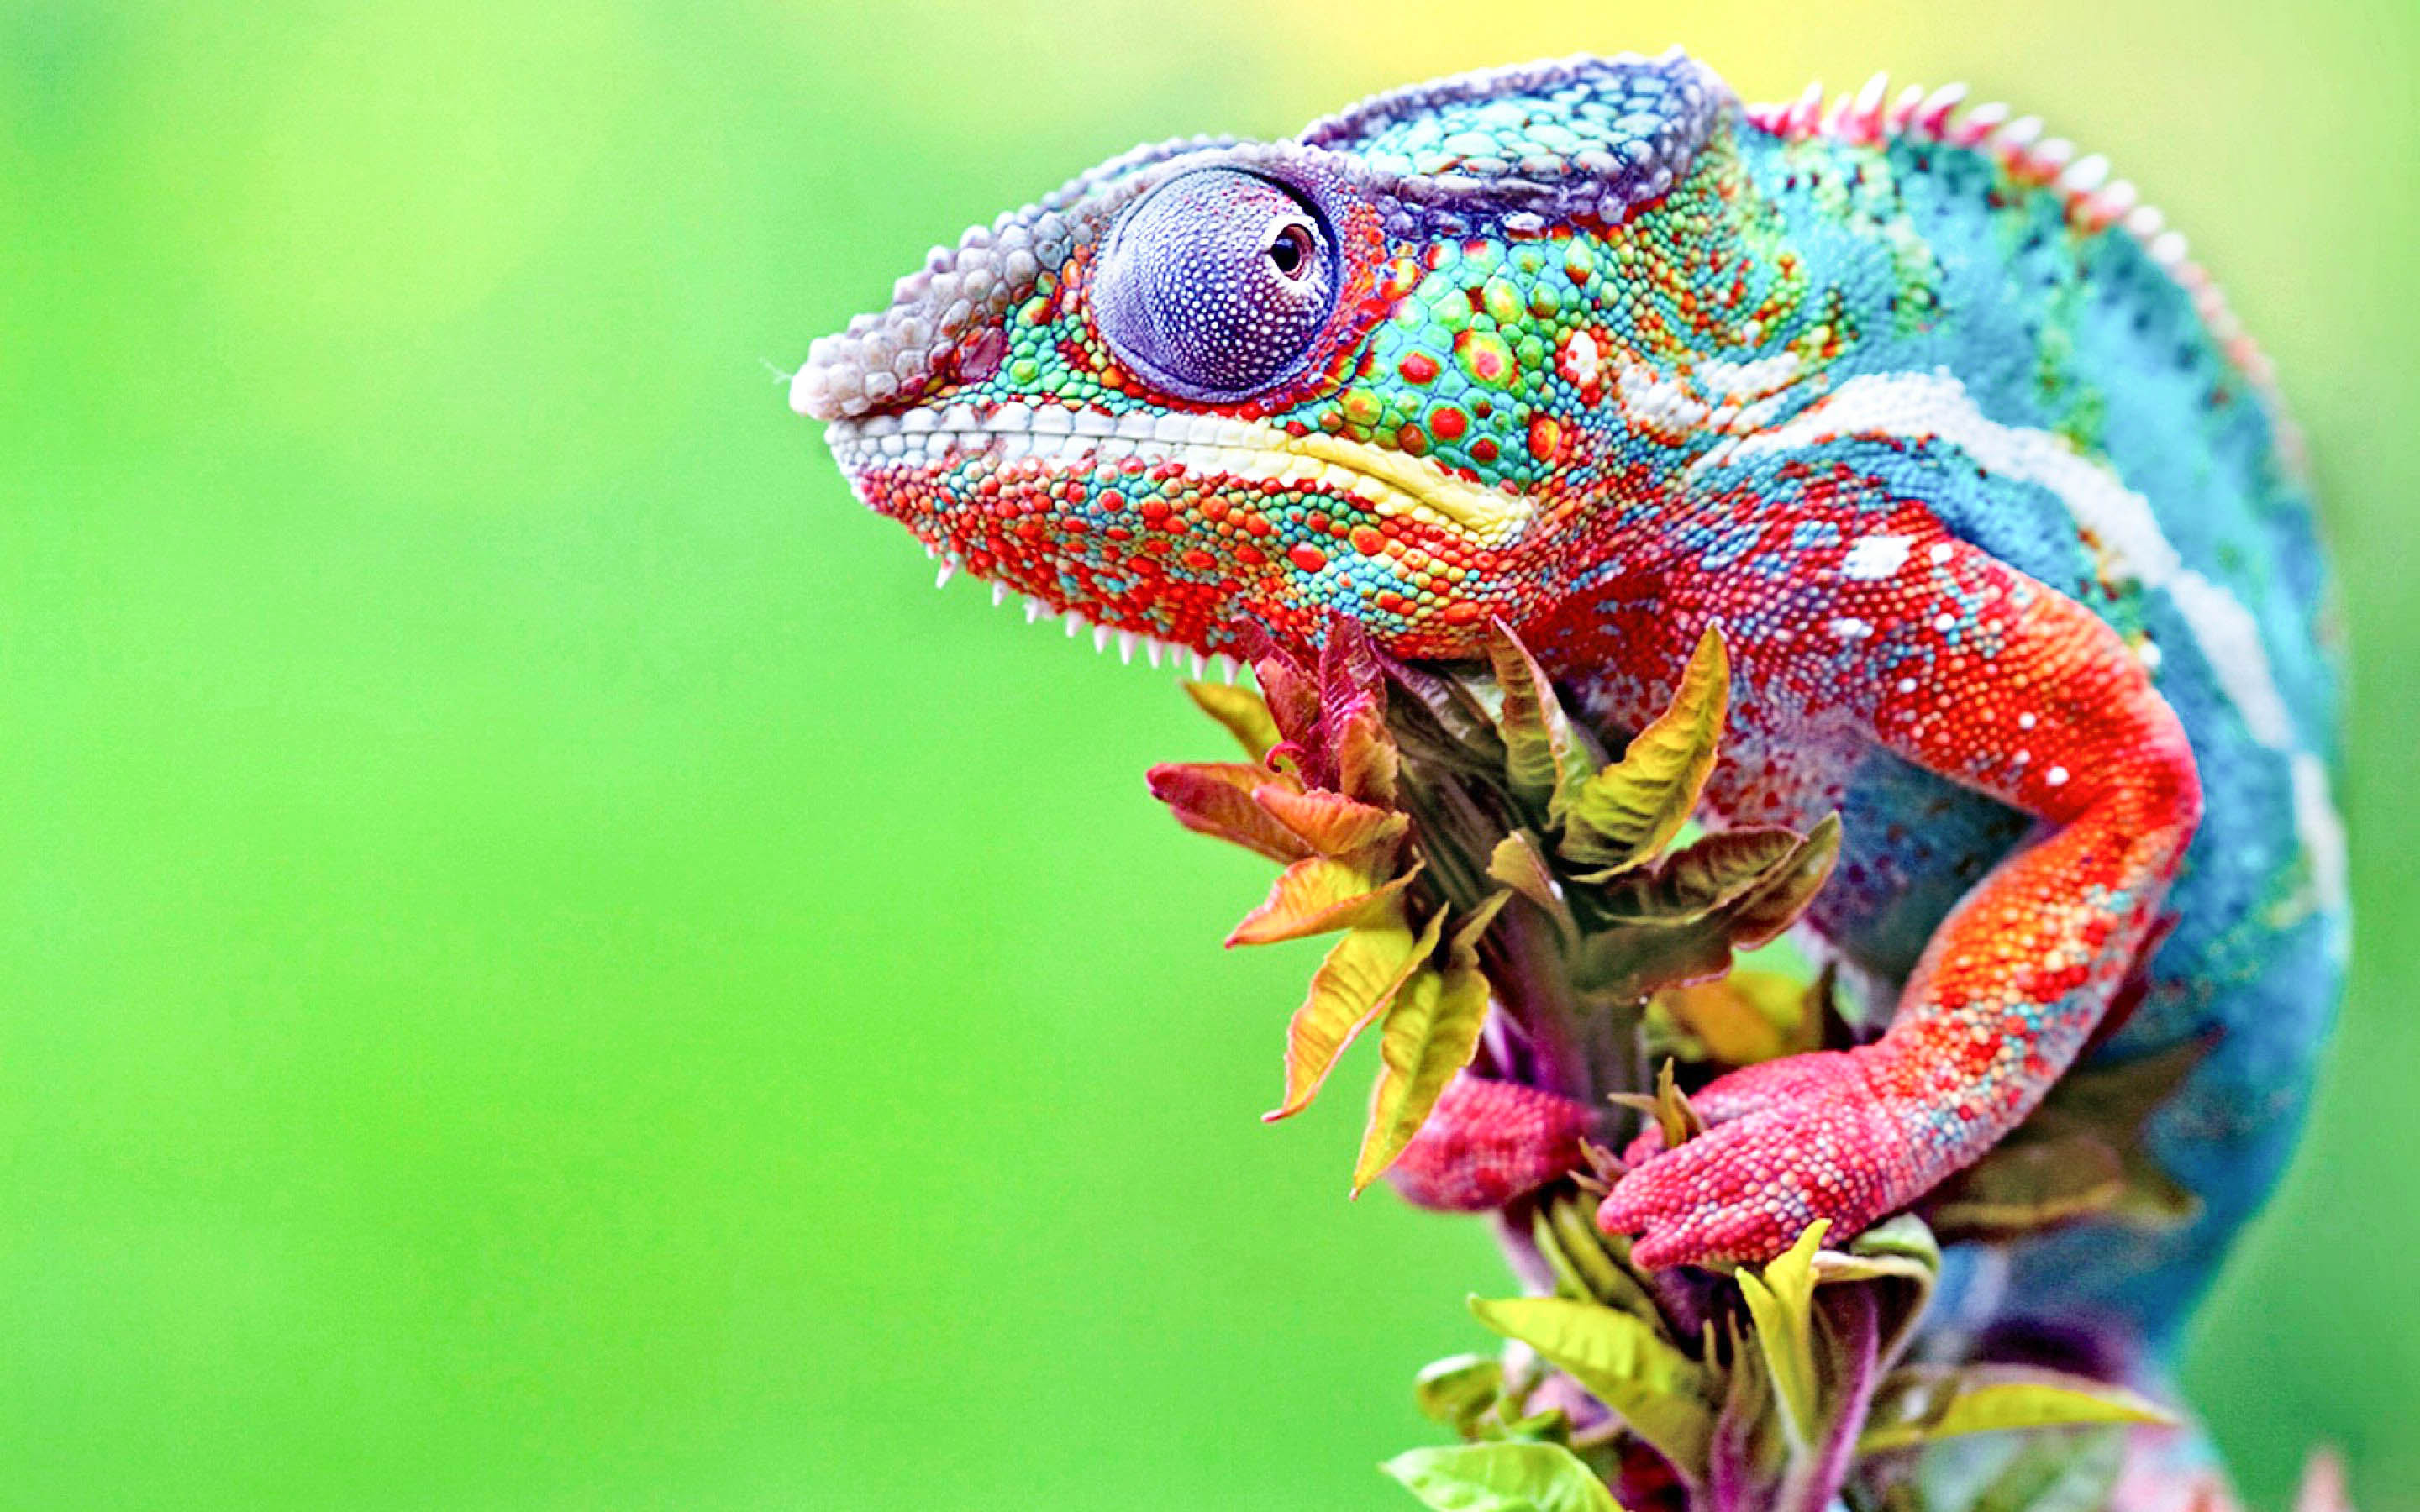 Chameleon Wallpaper - HD Wallpapers